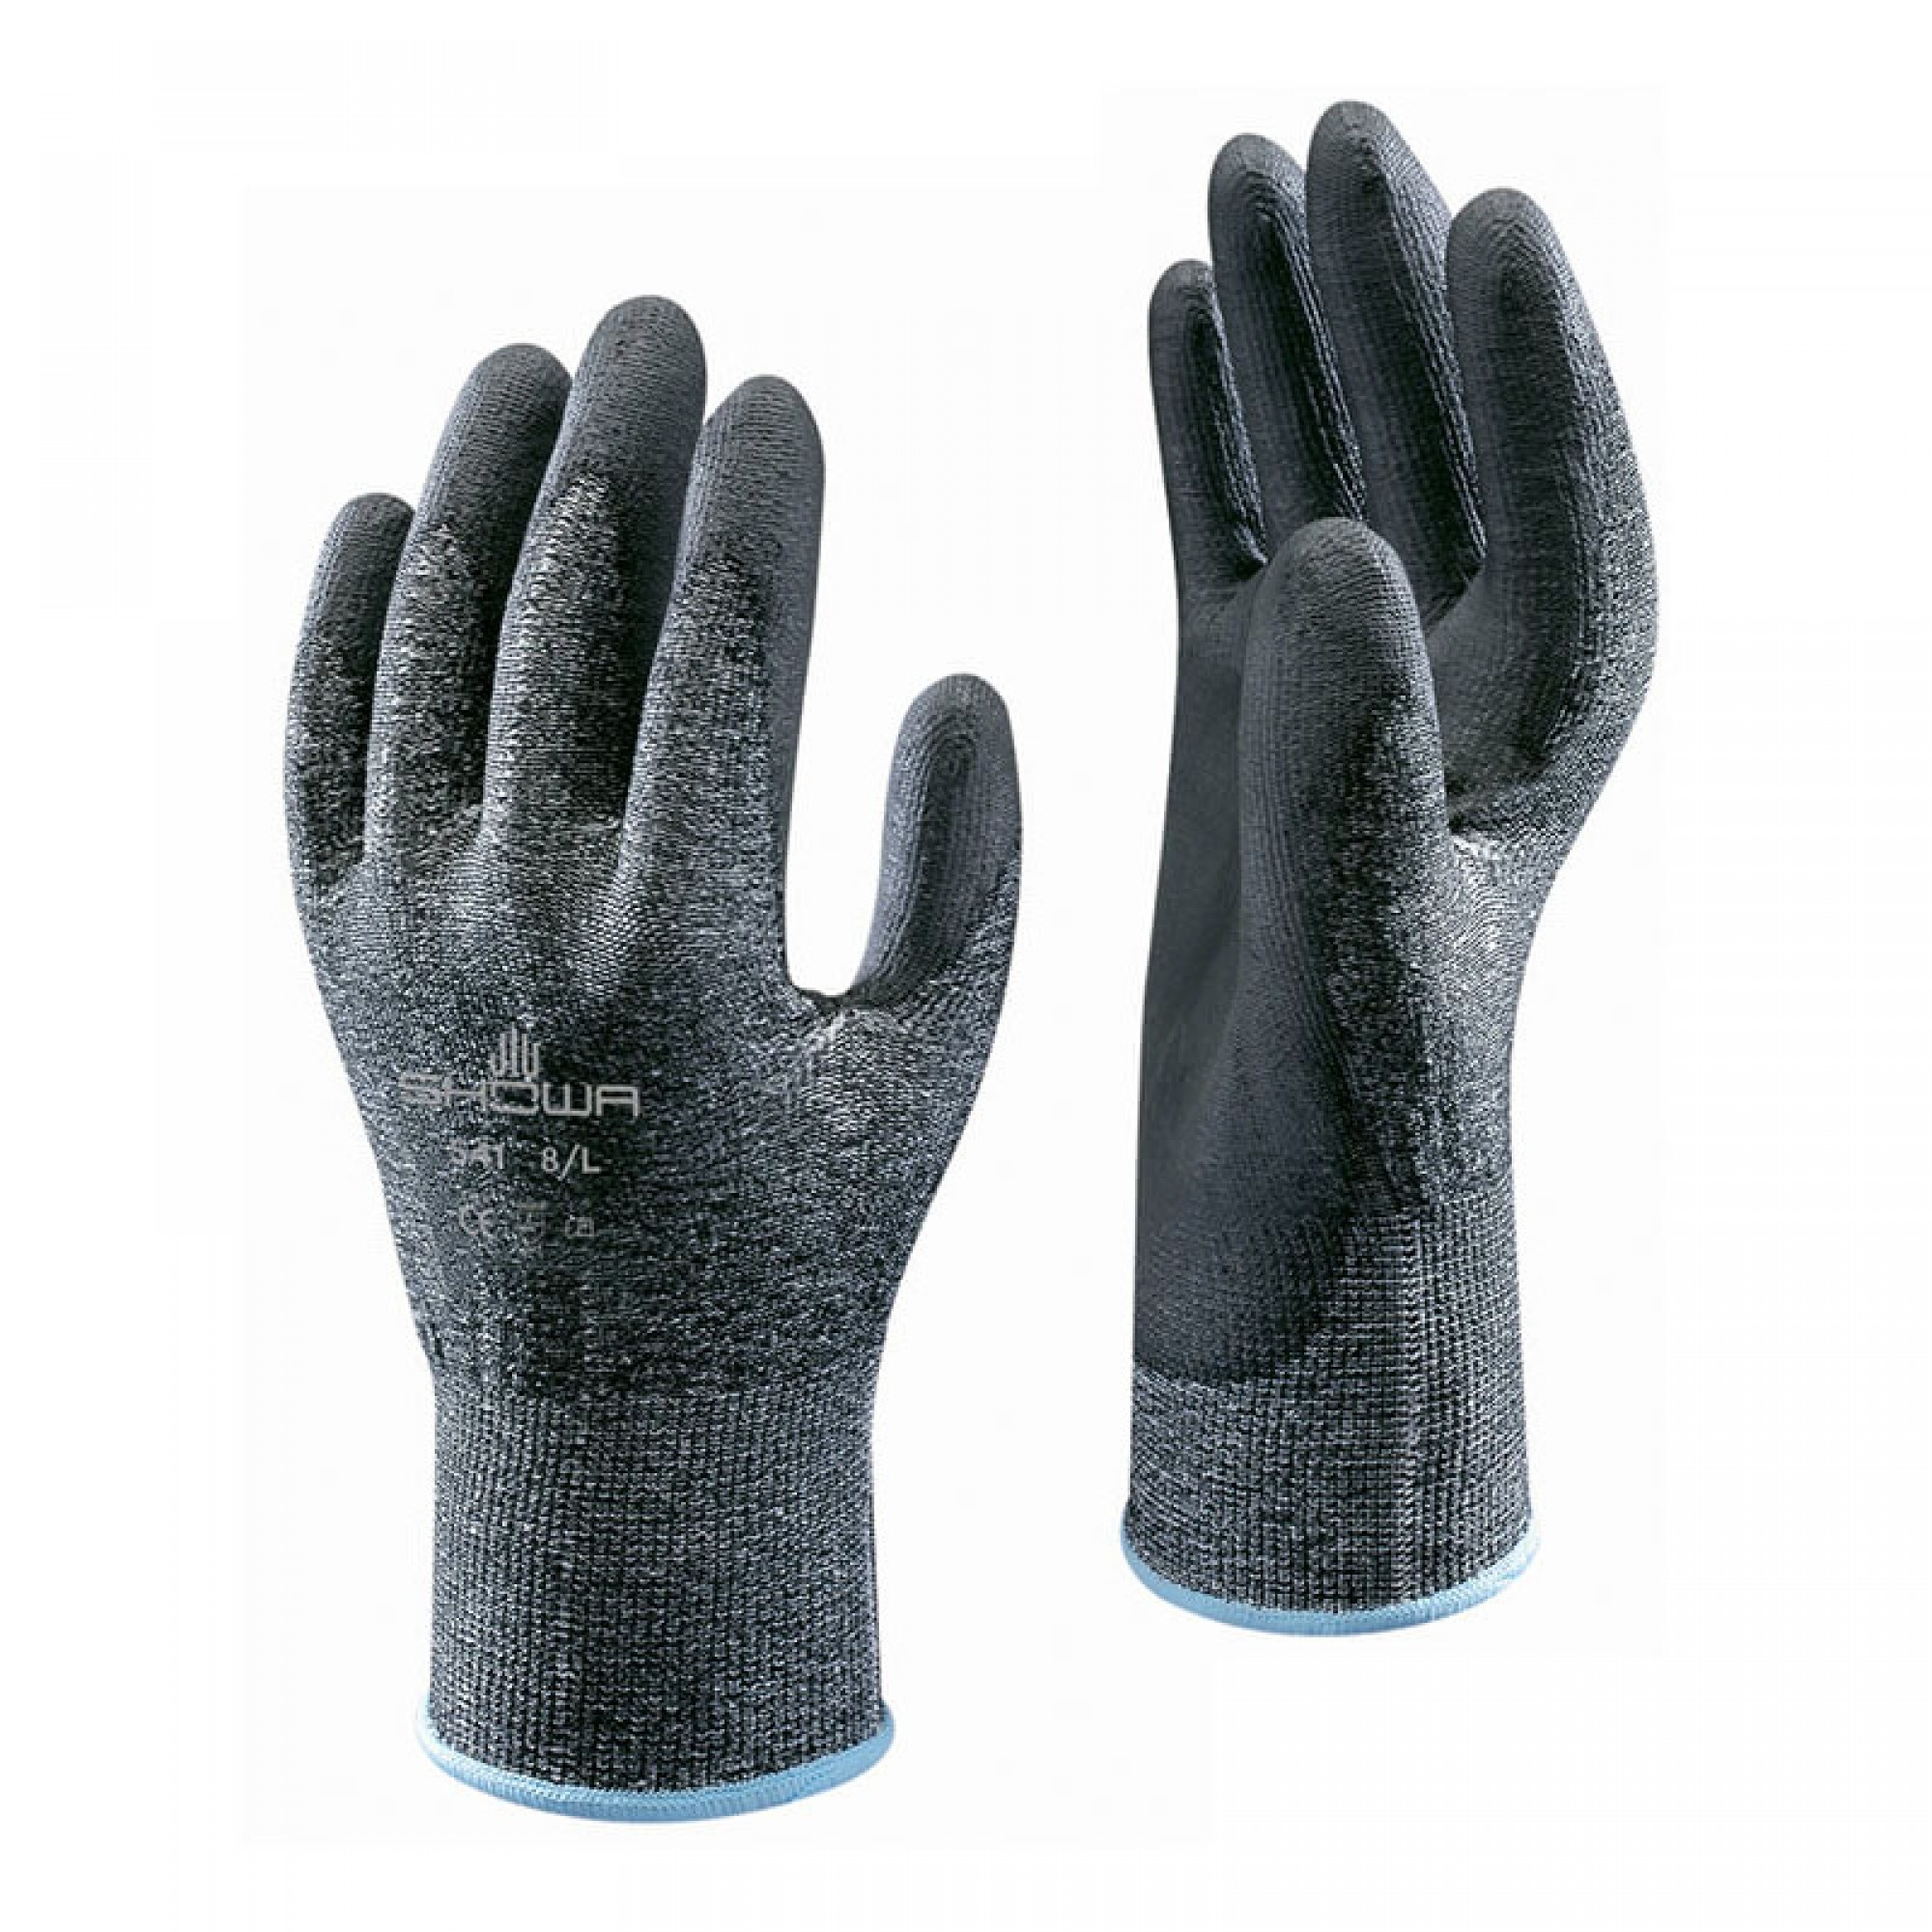 Showa PU Palm Coated HPPE Knit Glove (Level3) Image